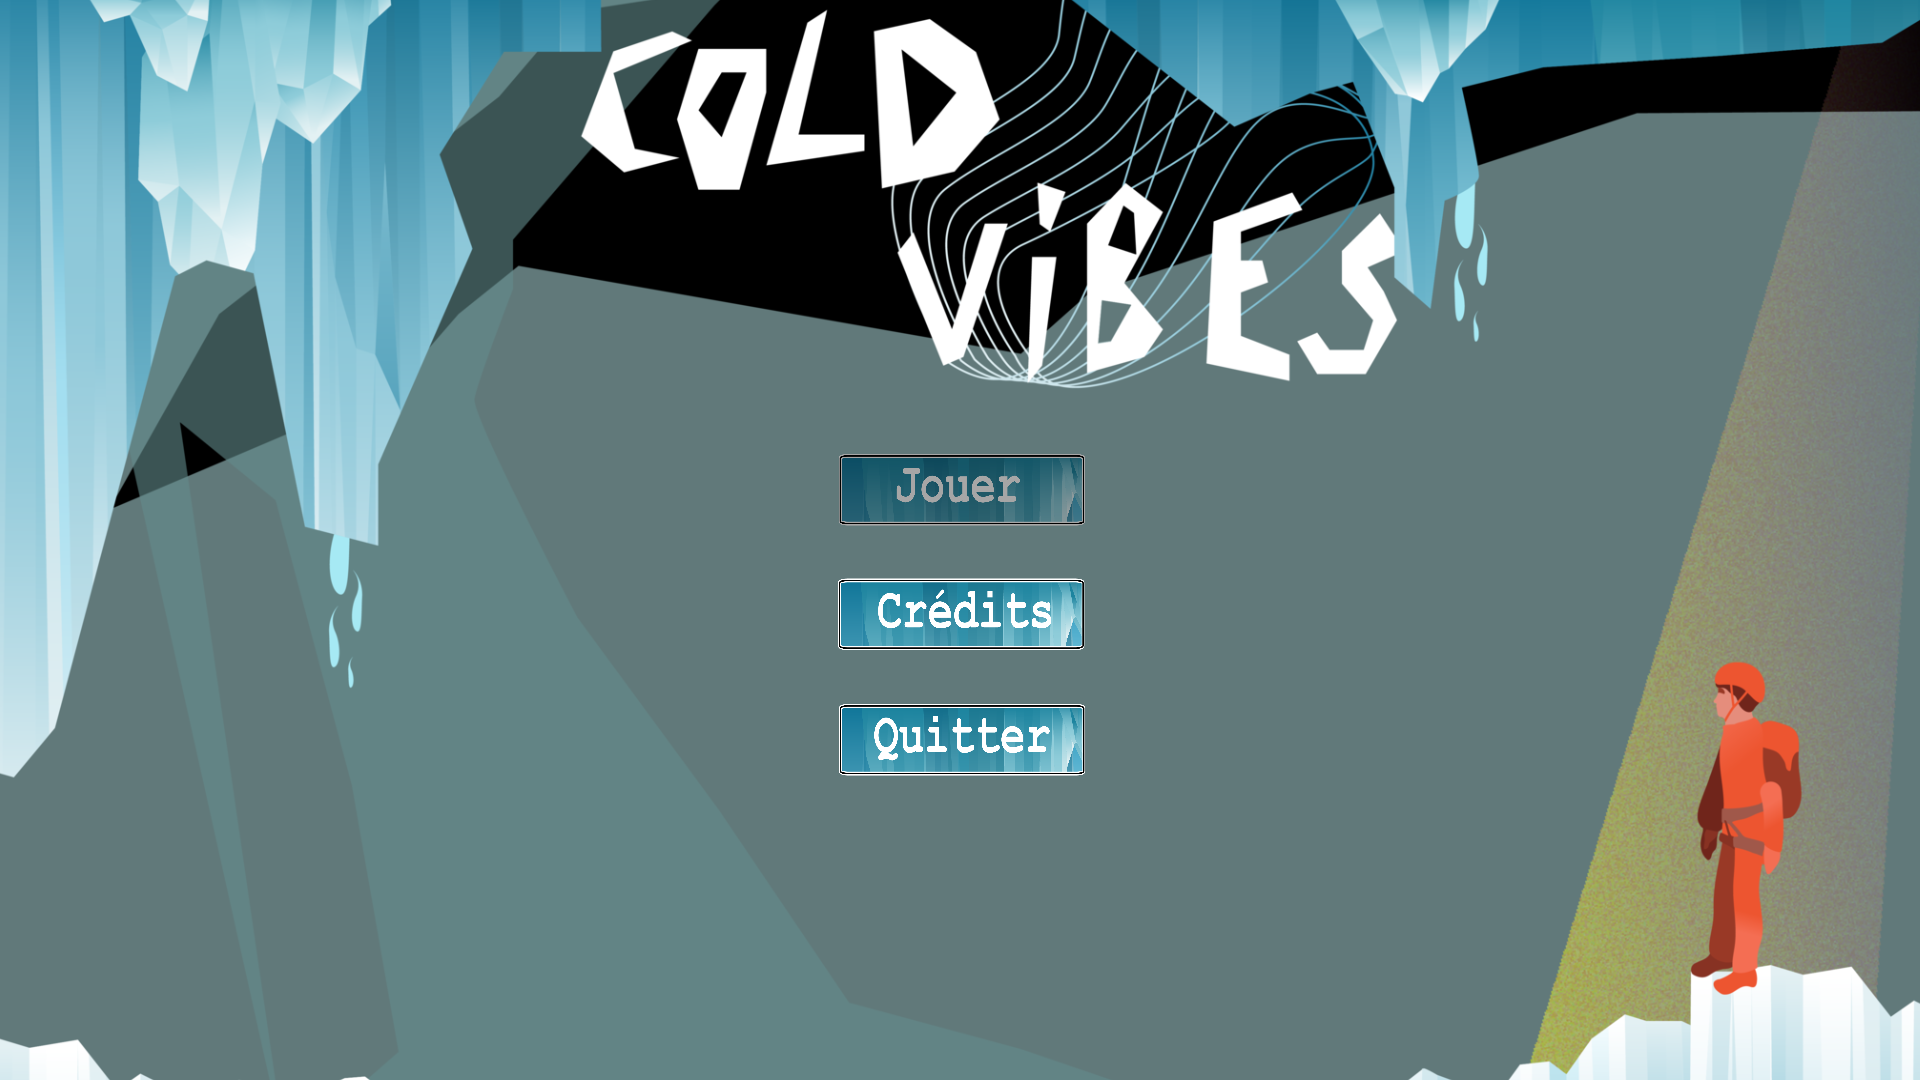 cold vibes 2